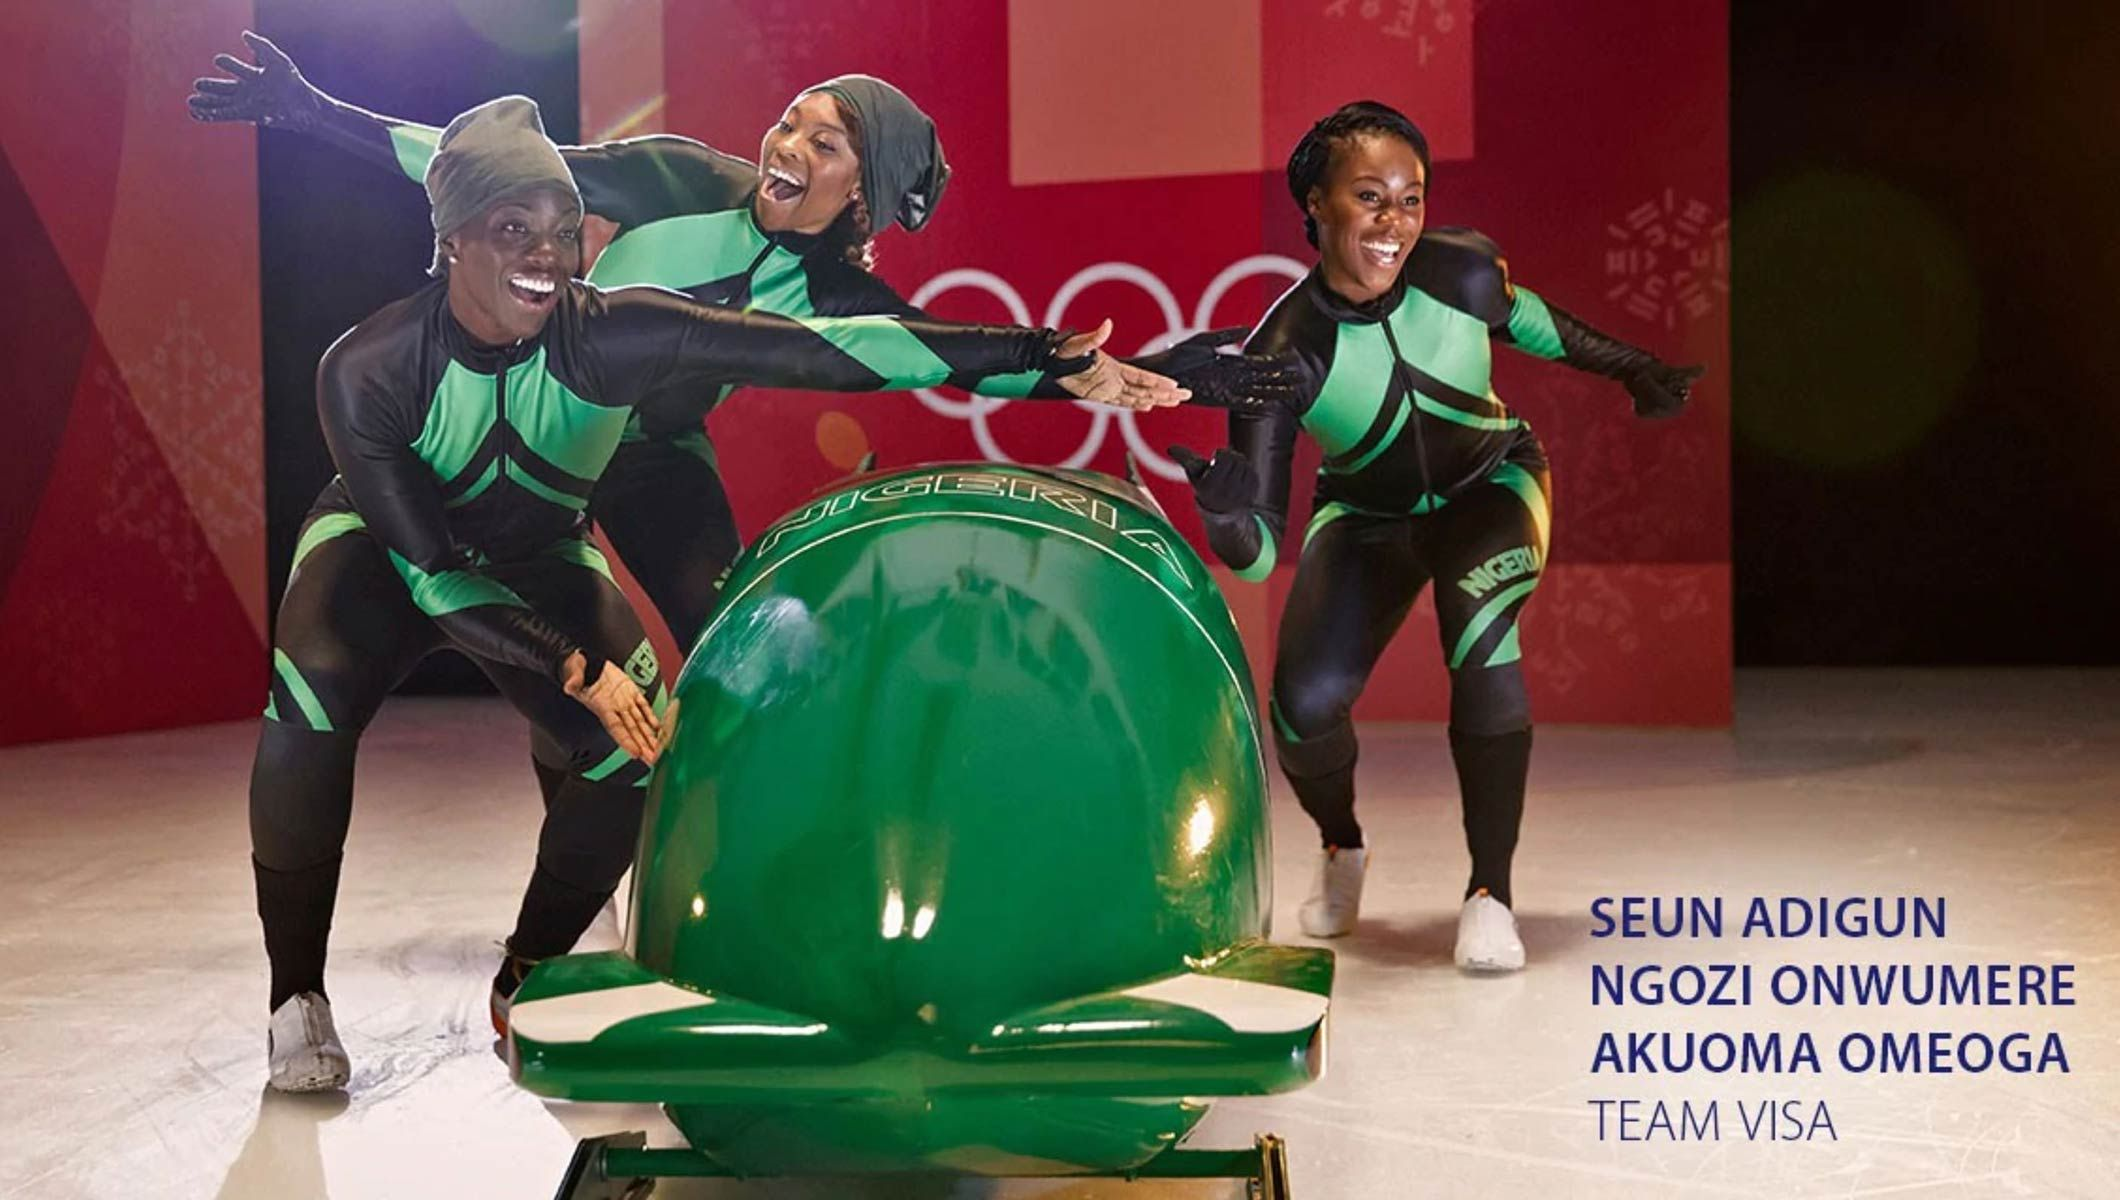 Nigerian Women's Bobsleigh Team joins Team Visa for the Olympic Winter Games PyeongChang 2018